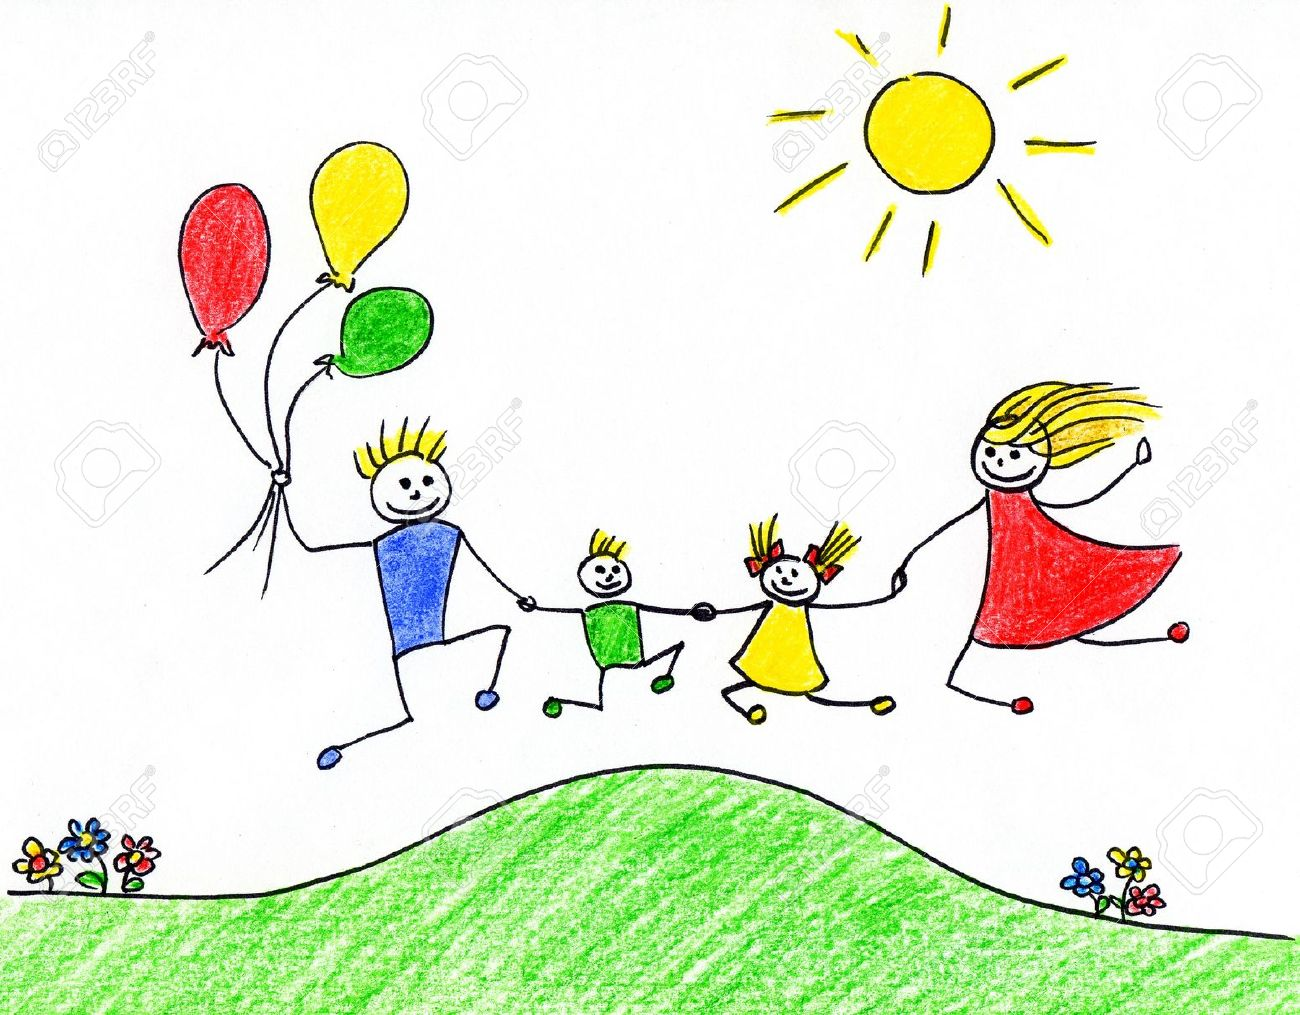 Children's drawing of happy family having good time together Stock Photo - 10684068